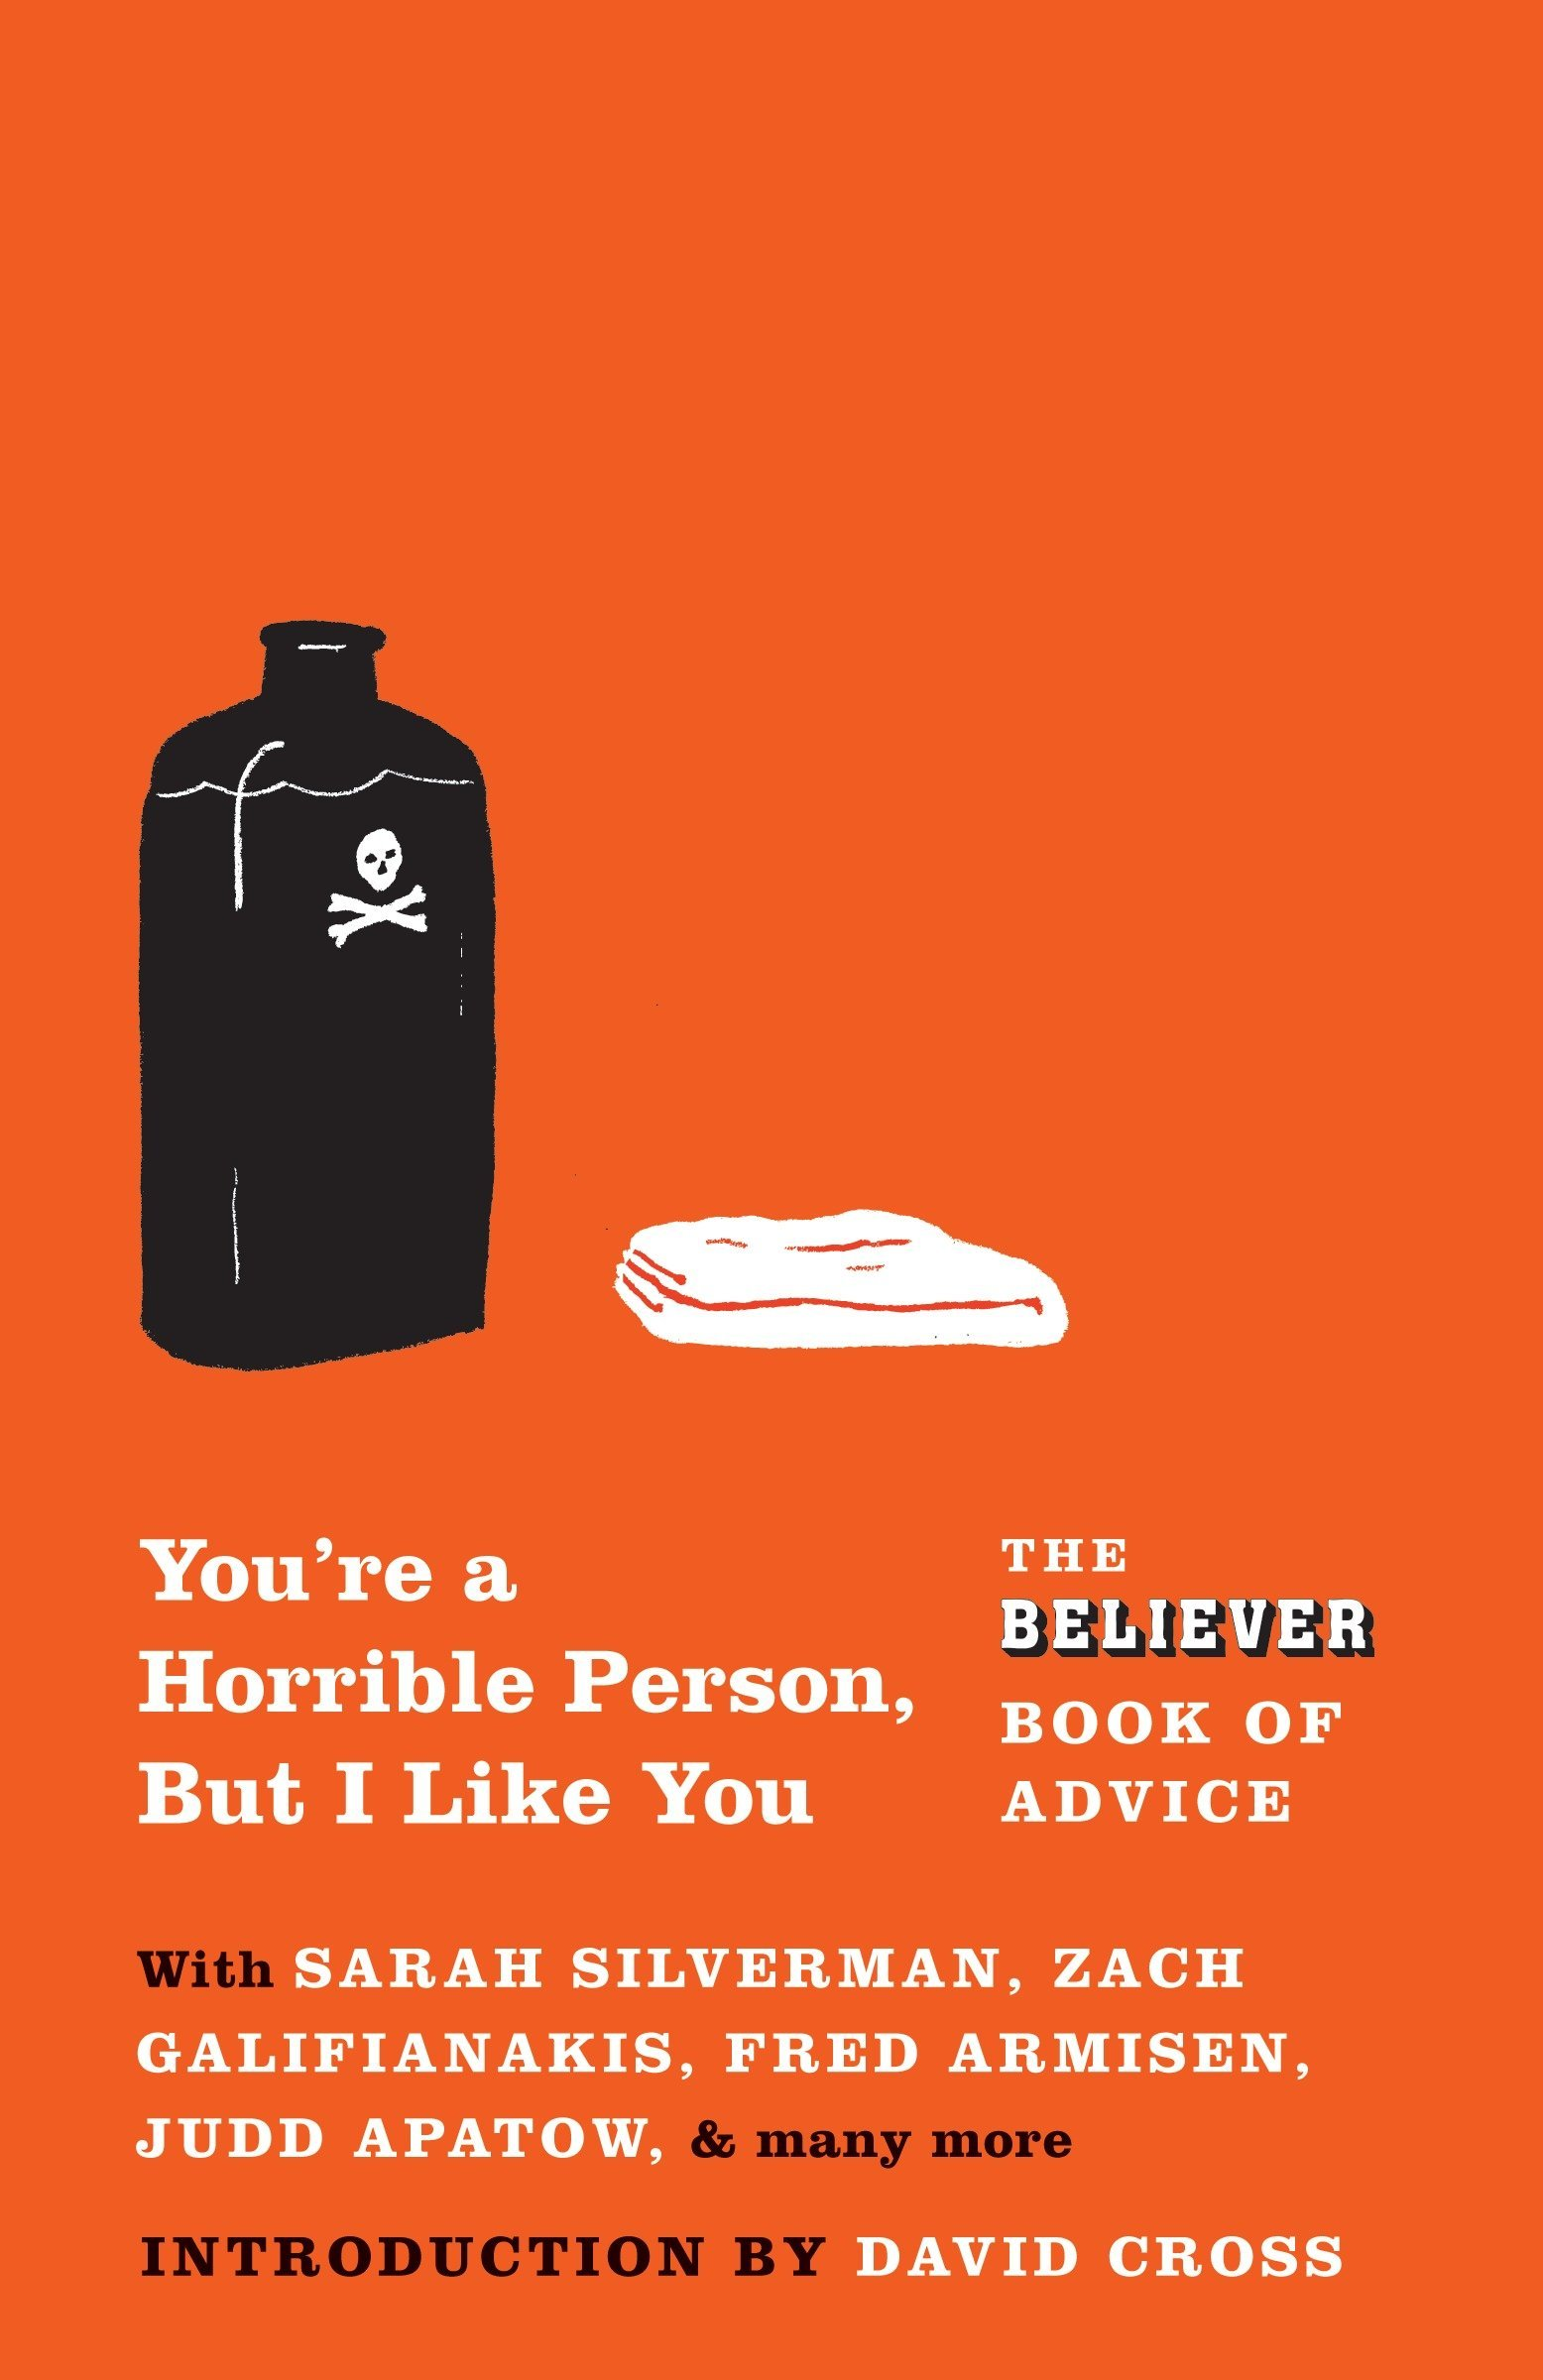 Download You're a Horrible Person, But I Like You: The Believer Book of Advice ePub fb2 book